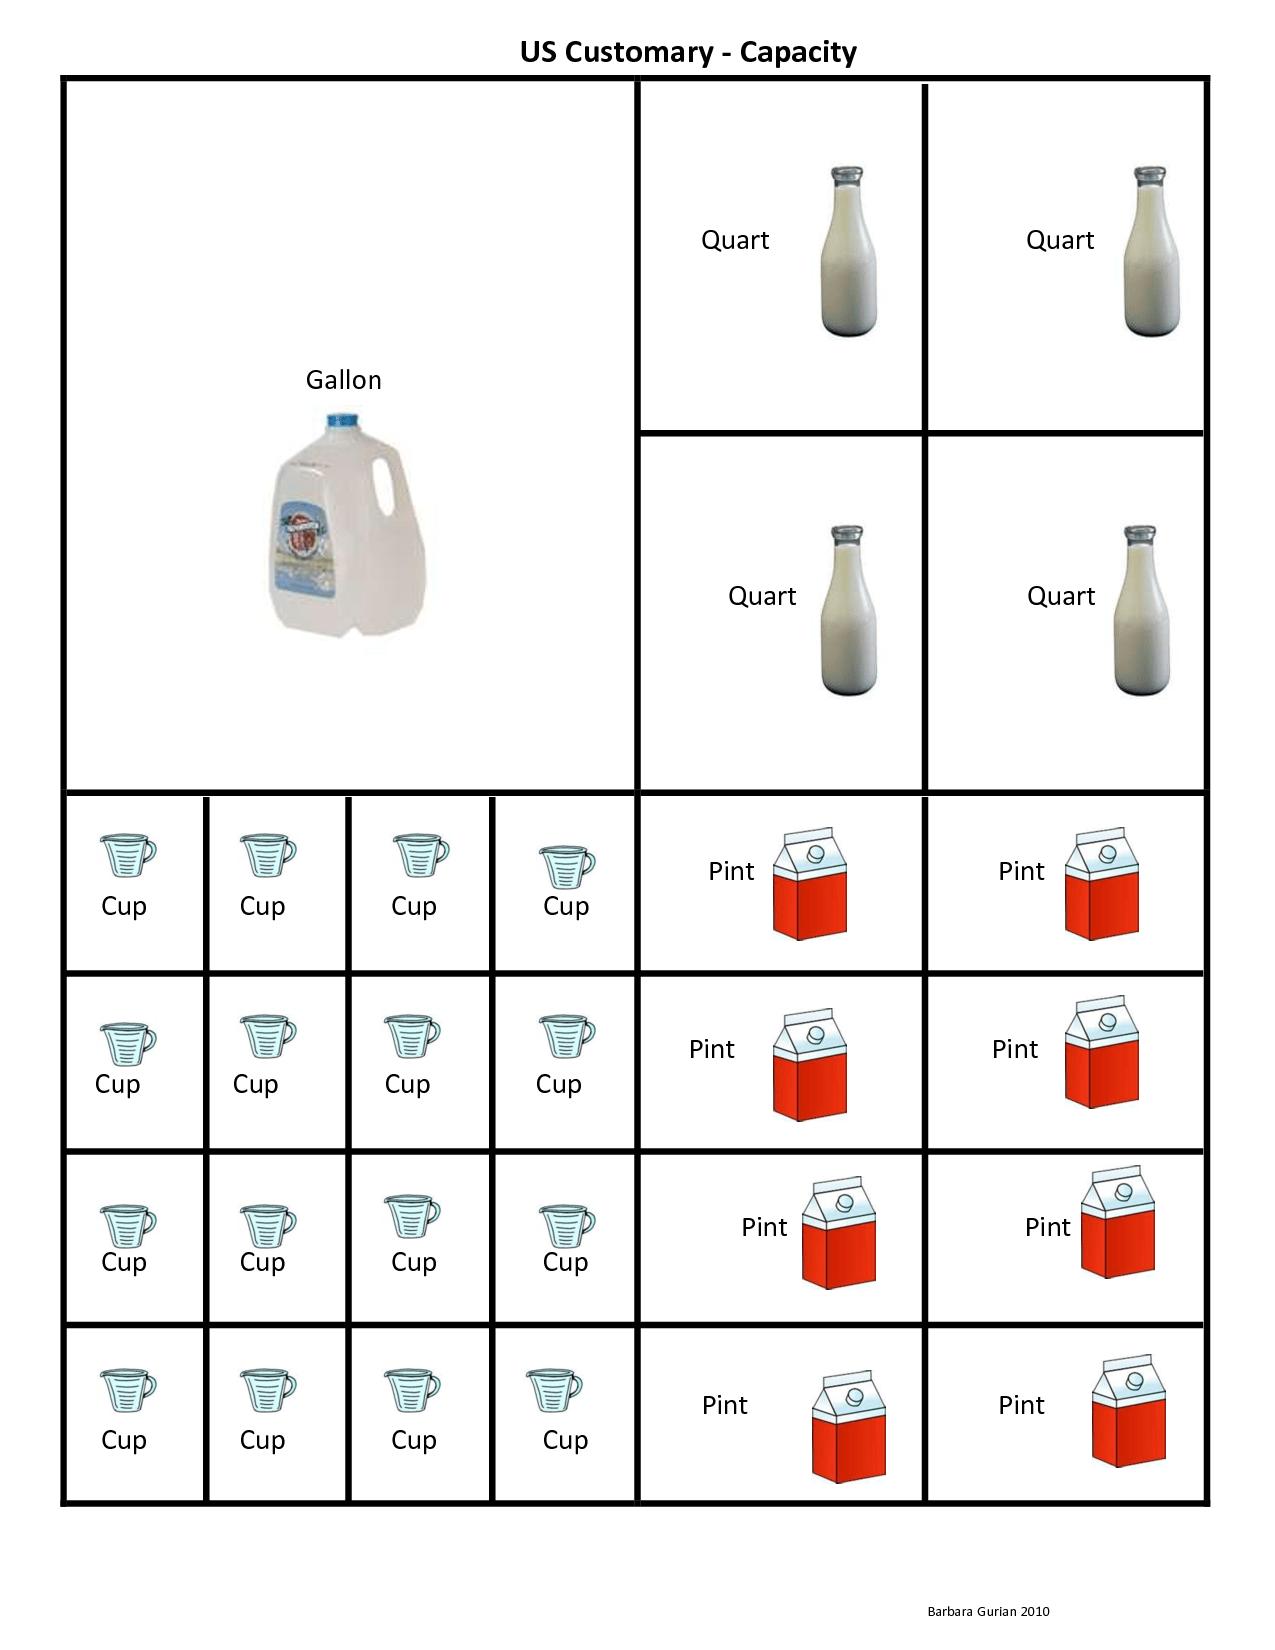 Cup Pint Quart Gallon Conversion Chart Clipart